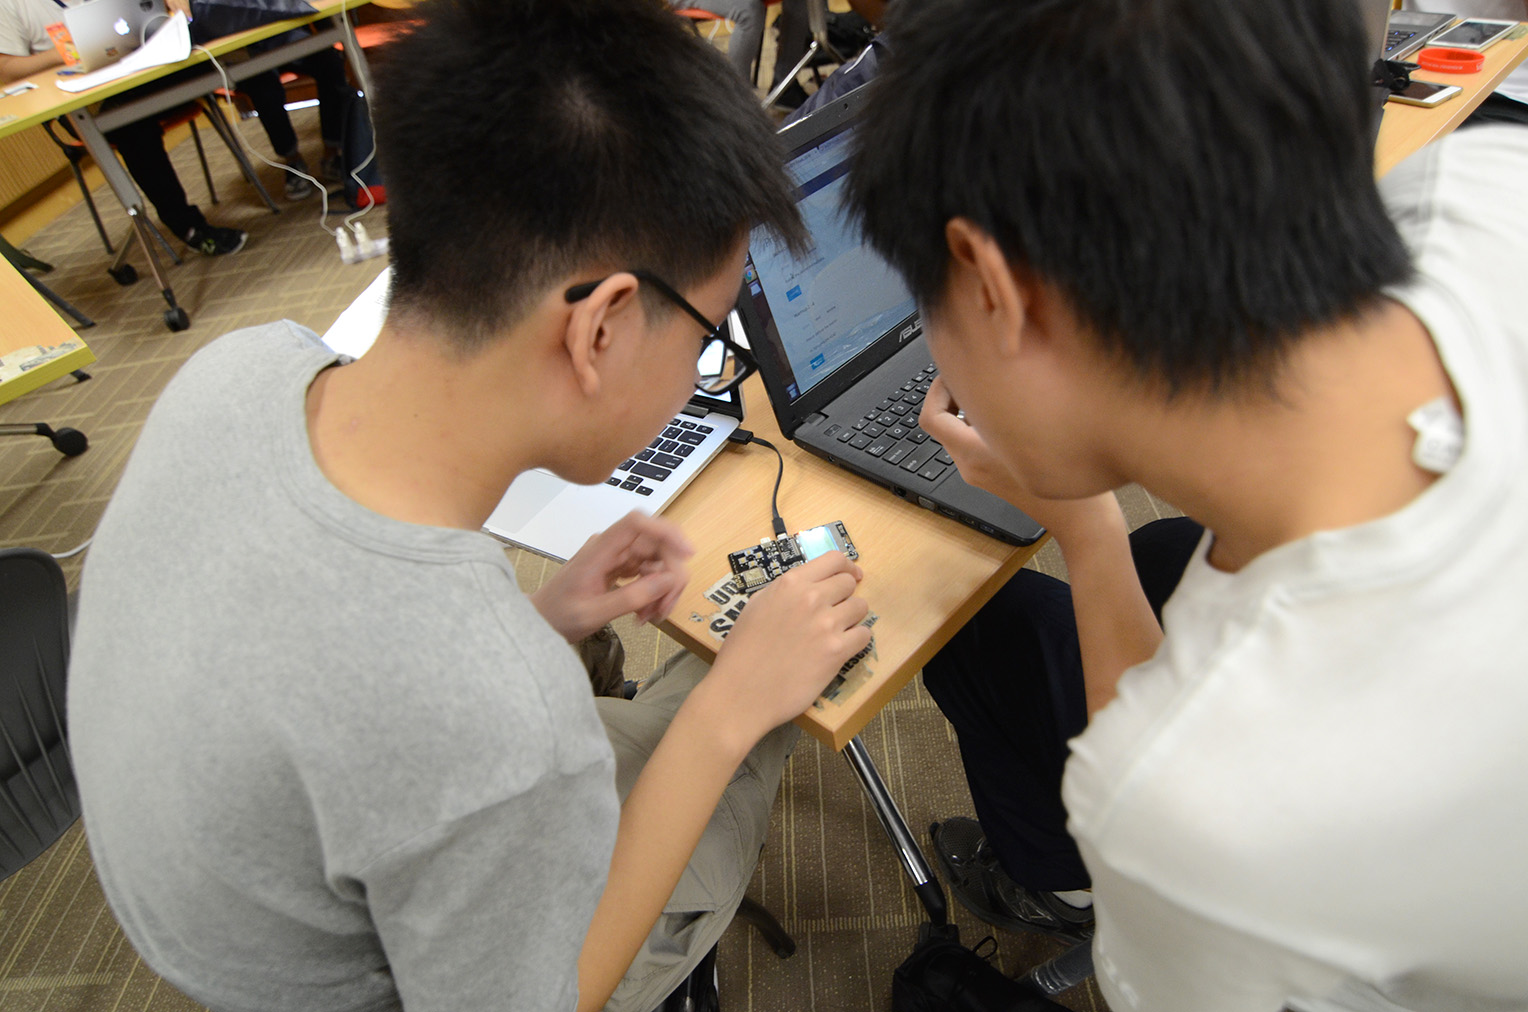 Solving the hardware badge challenge